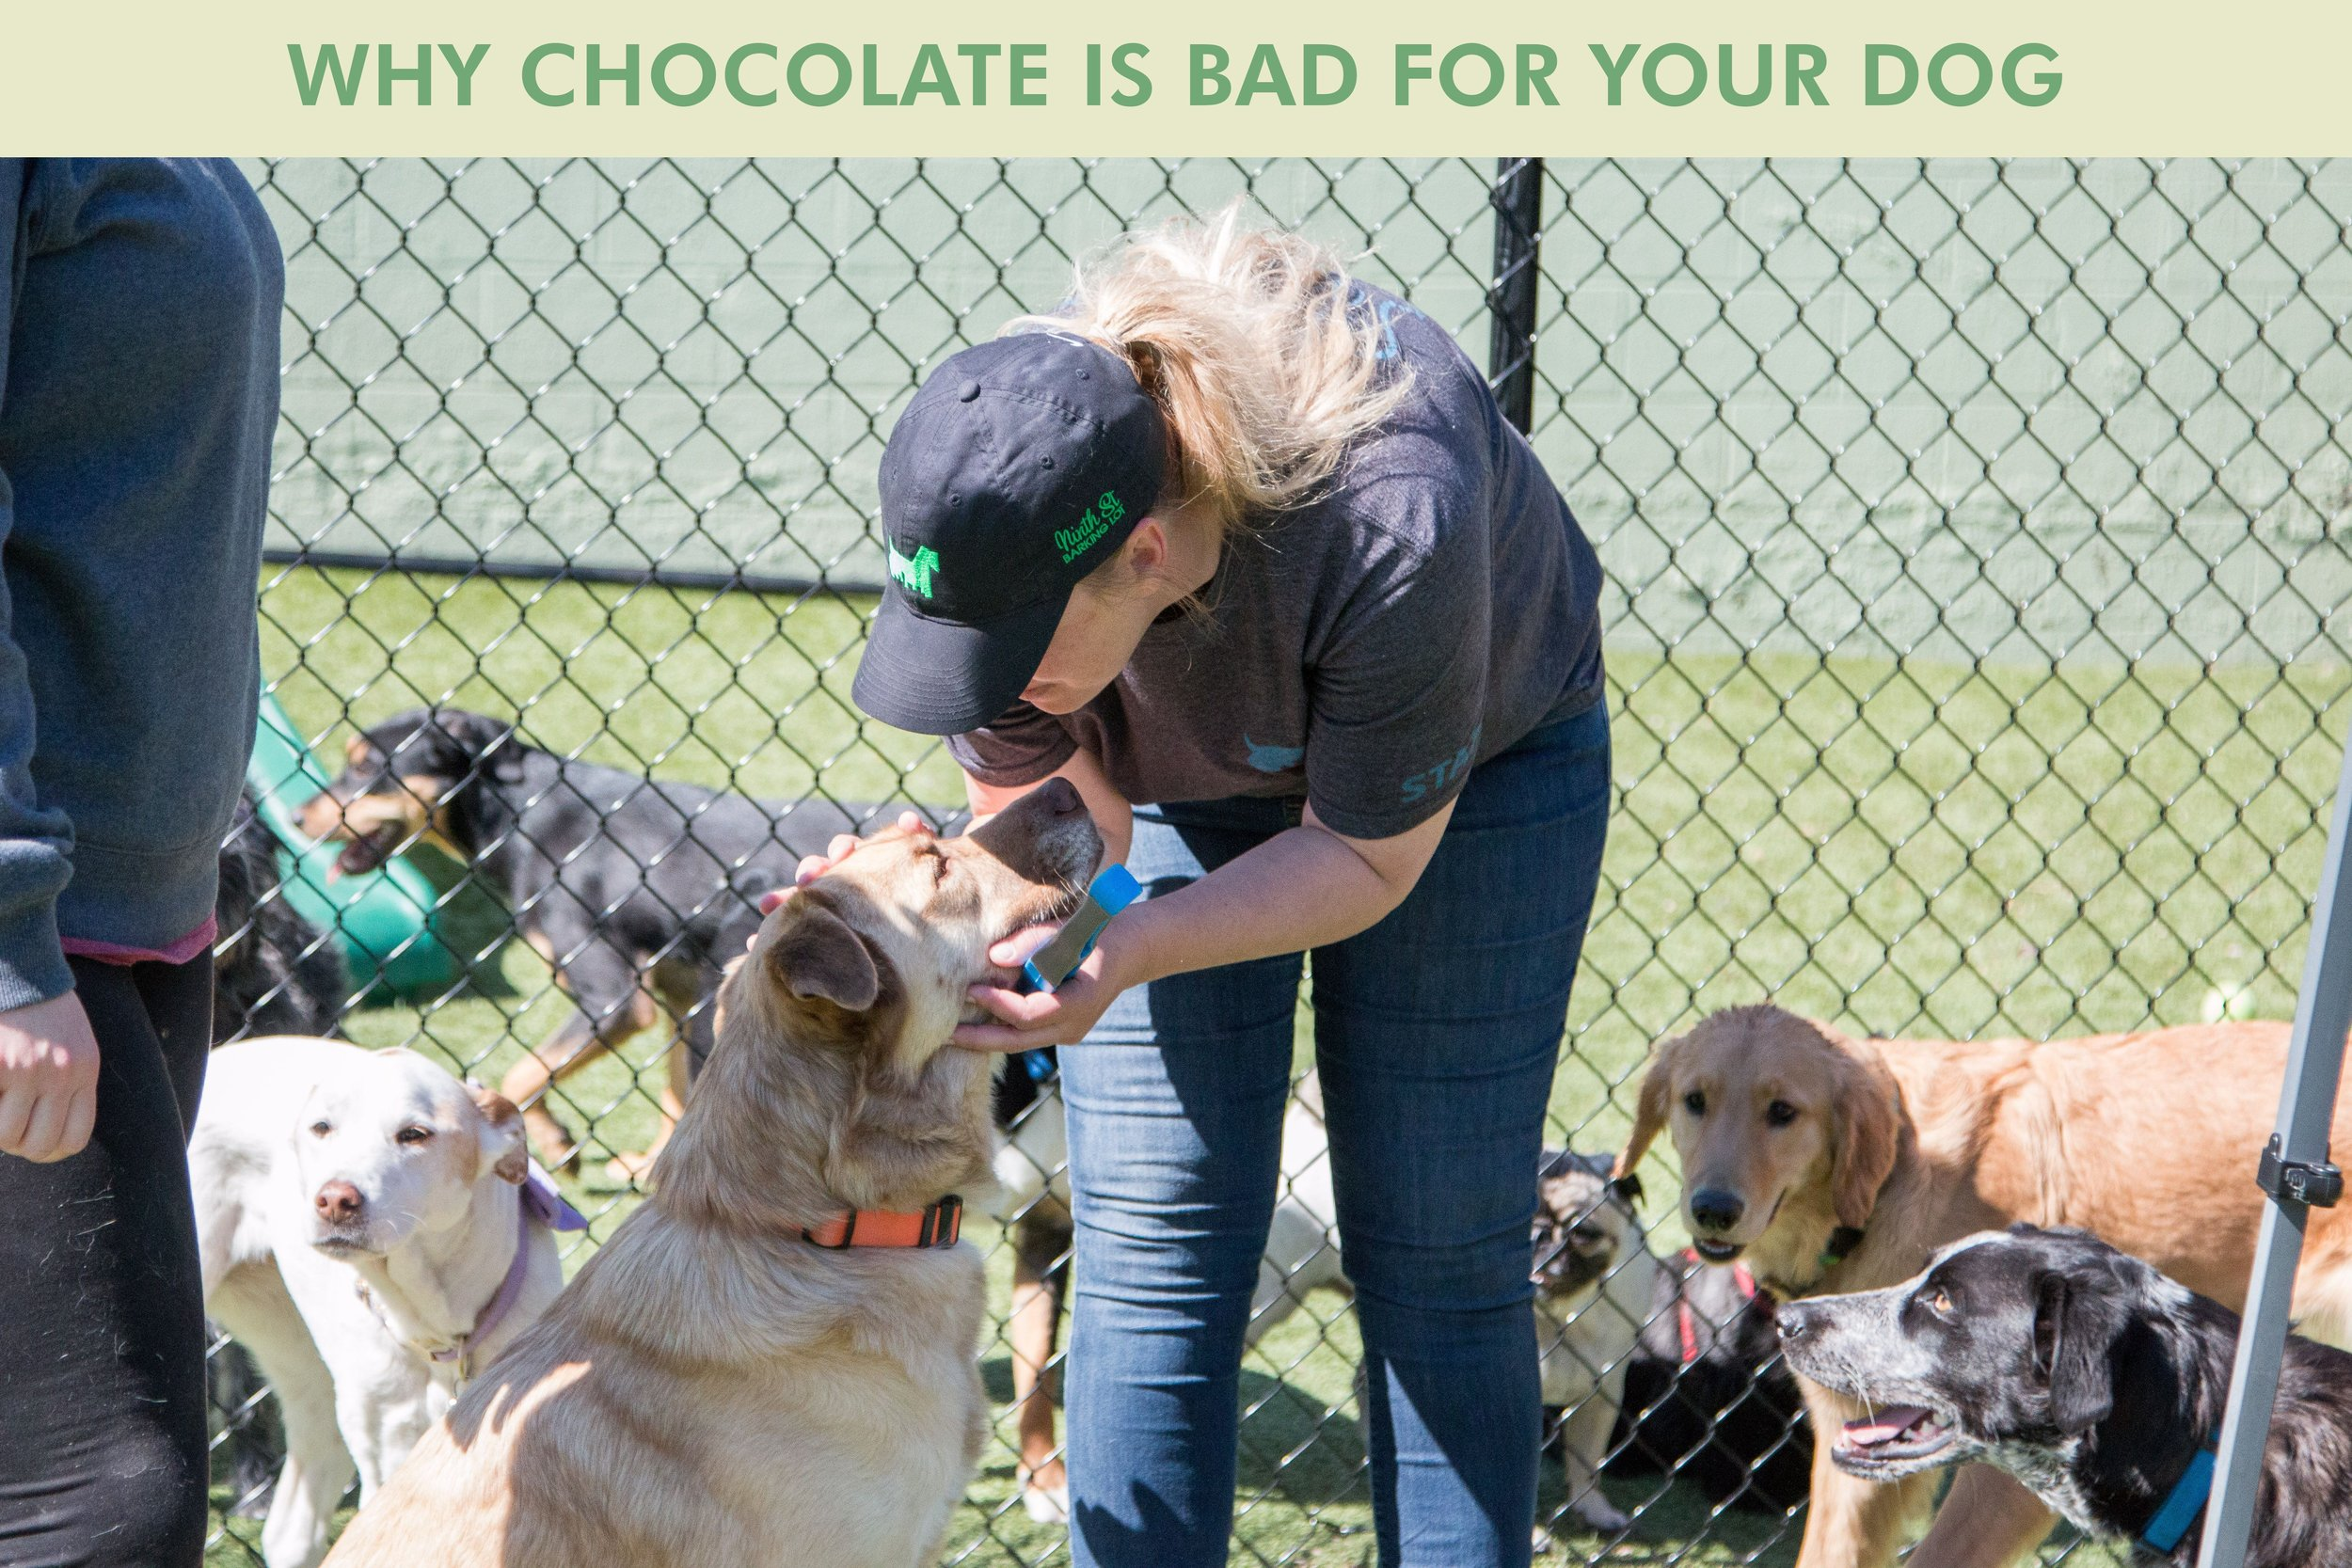 Why Chocolate is Bad for Your Dog